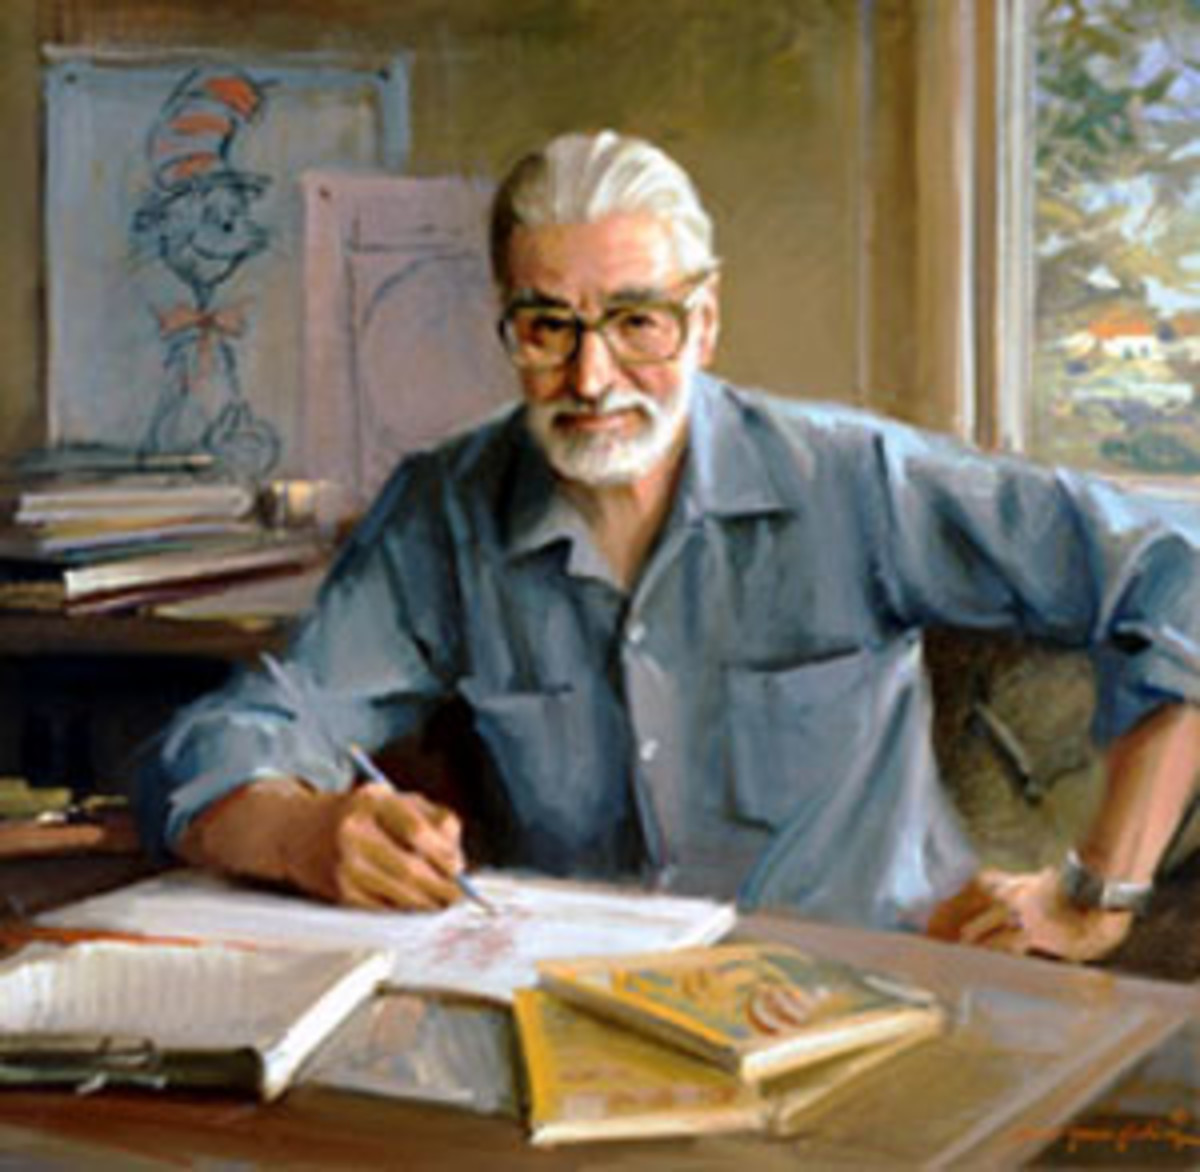 Dr. Seuss: Legendary Children's Book Author